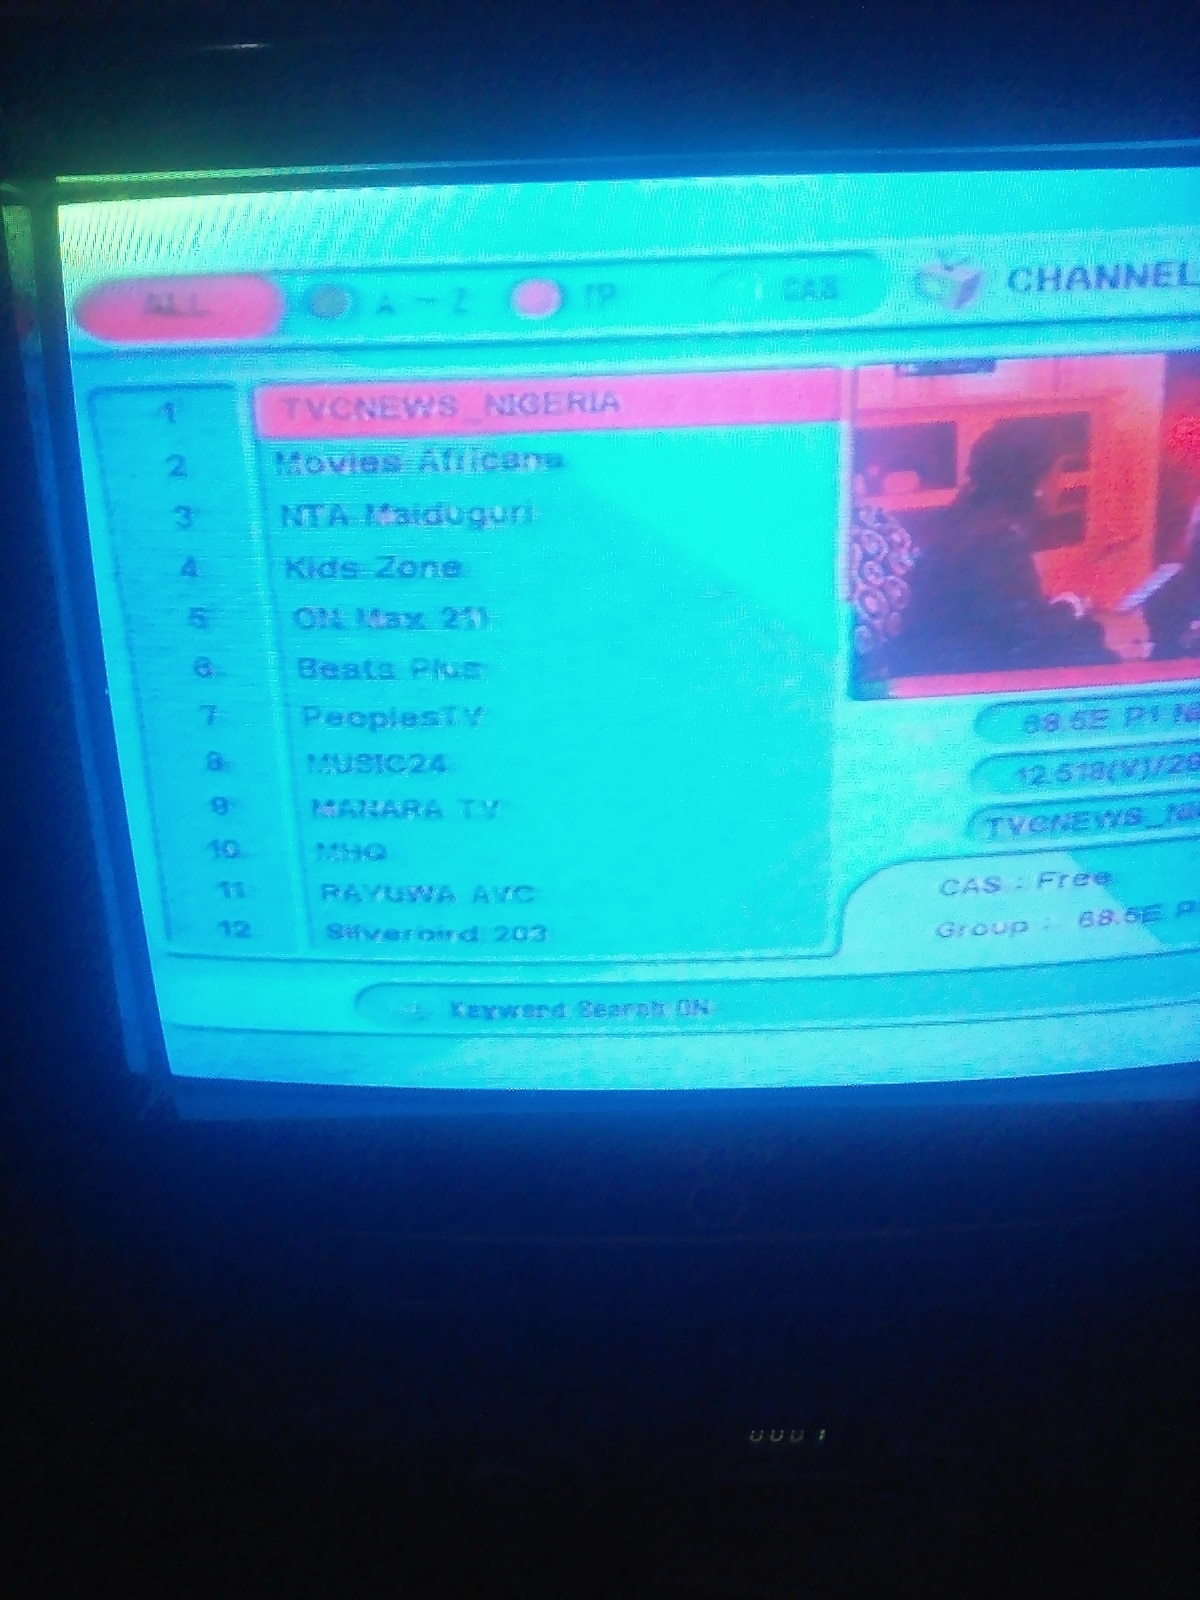 How to track NigcomSat 1R 42 5 Degree East Frequencies TV Channels